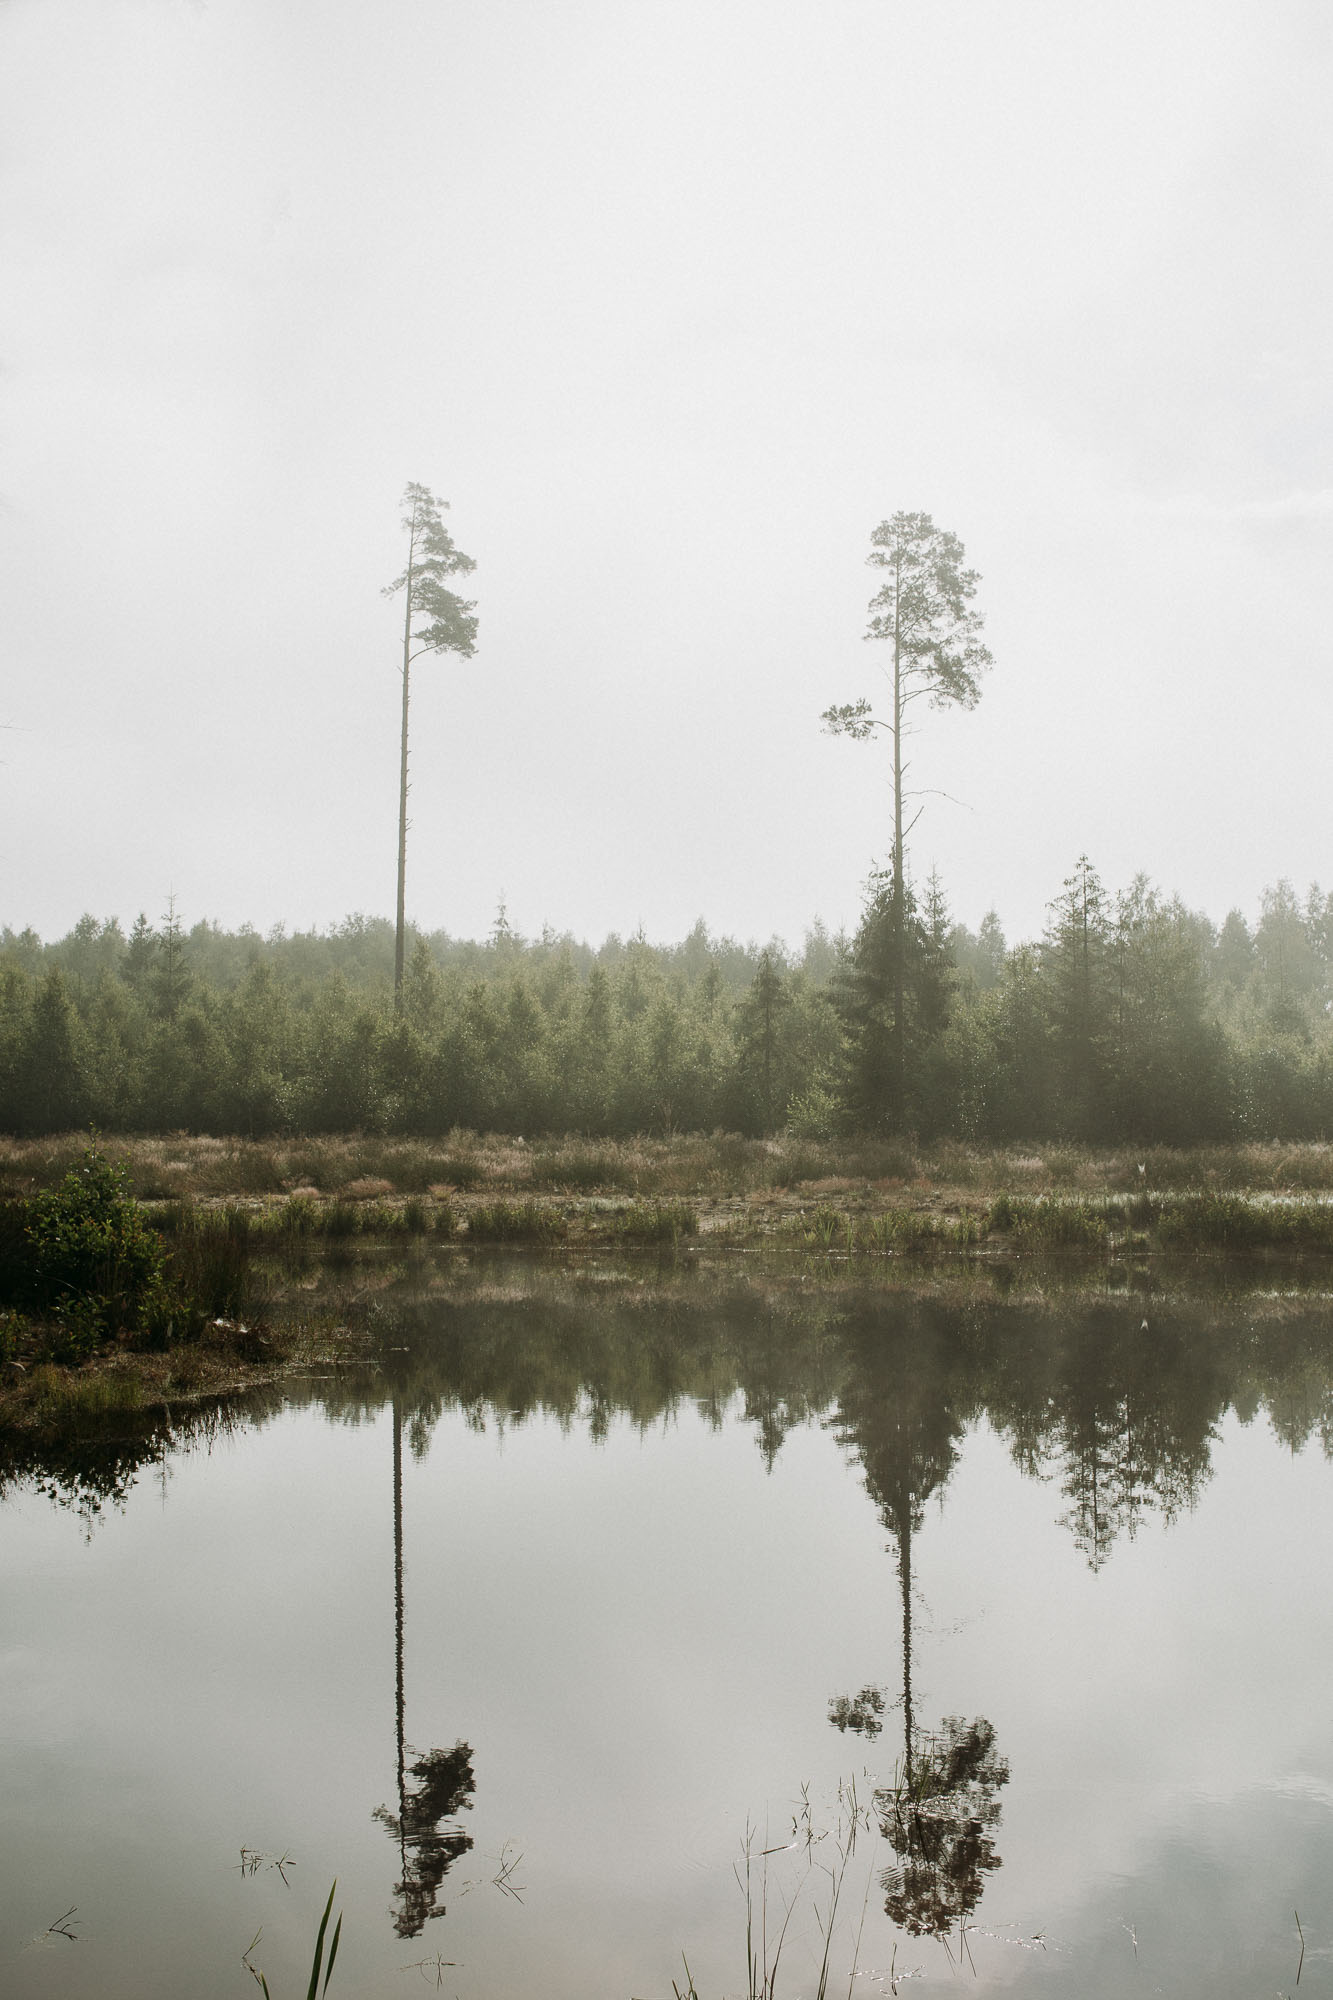 Photo ID: Two single tall Scots pine trees stand in a foggy field of young fir trees by a pond. The are reflected in the surface of the still water.